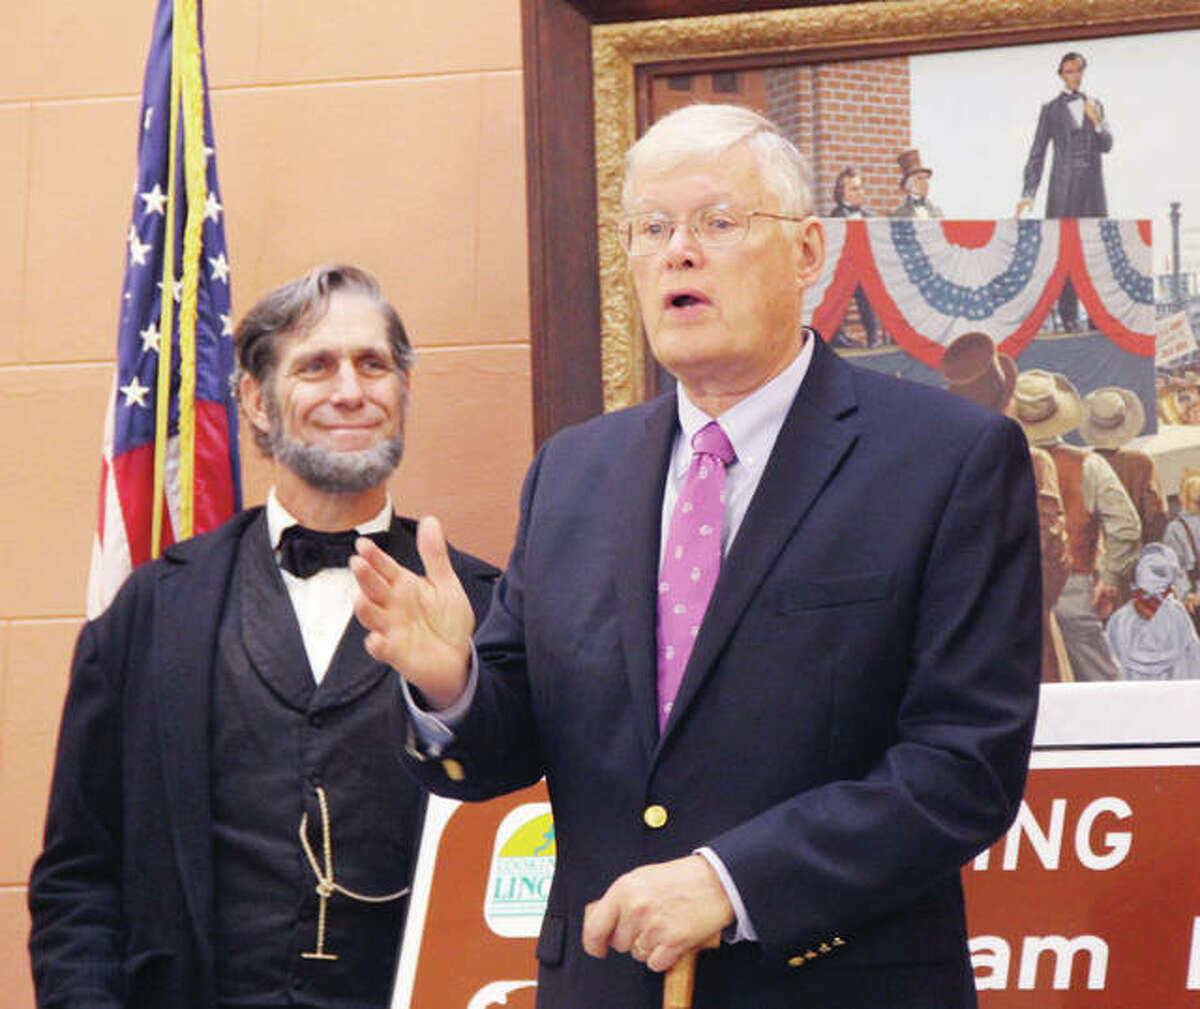 Then-State Sen. Bill Haine talks about the history of Abraham Lincoln and the abolitionist movement in Alton as Lincoln impersonator Randy Duncan, of Carlinville, looks on in October 2016. Behind them is a painting showing a younger Lincoln at the Lincoln-Douglas Debate in Alton. Officials were at City Hall to announce the inclusion of Alton as one of six Gateway Cities to the Abraham Lincoln National Heritage Area in Illinois.